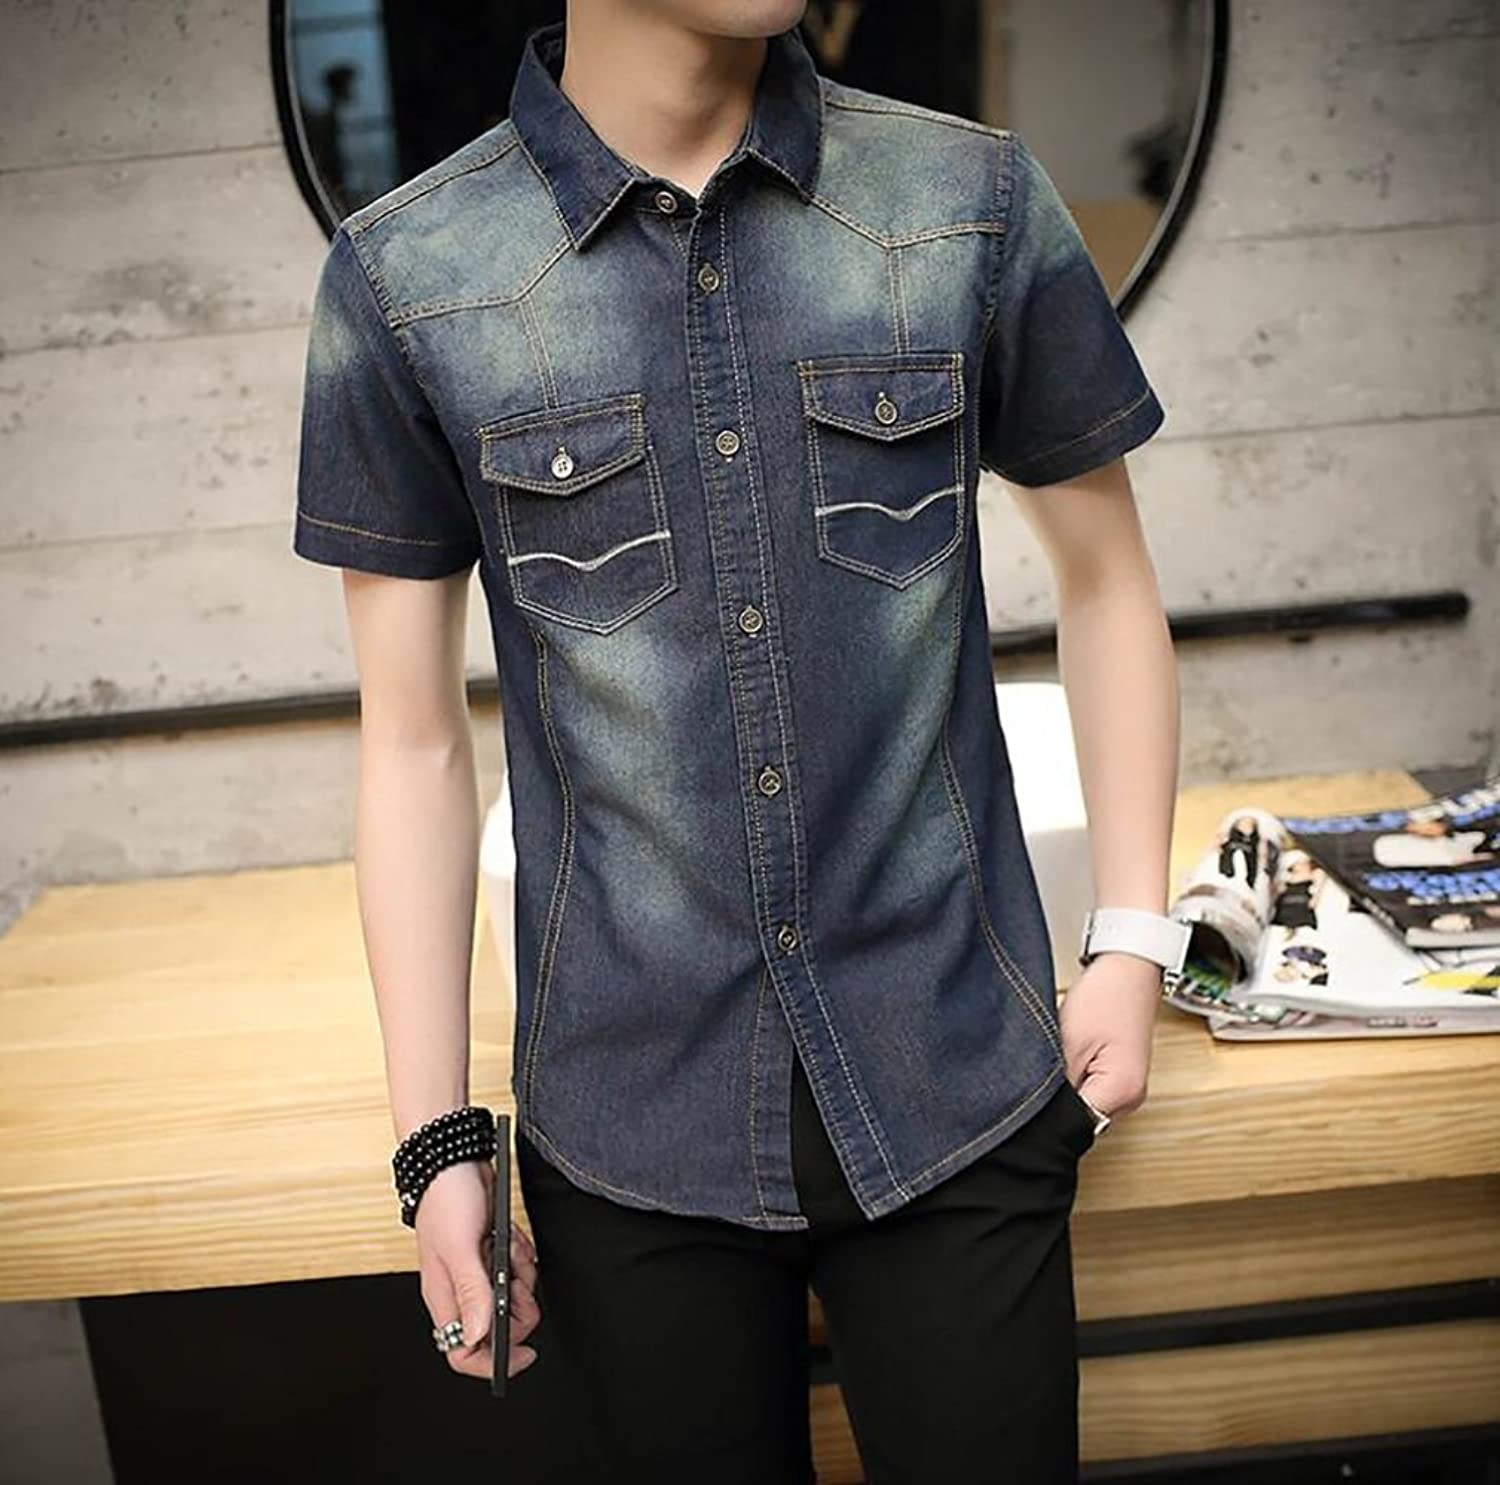 Men's Shirt Casual Cotton Slim T Shirts  Solid colord Cowboy Lightcolord Thin Section Short Sleeve Fashion Lapel Casual Slim Tops (color   3, Size   XXXL)